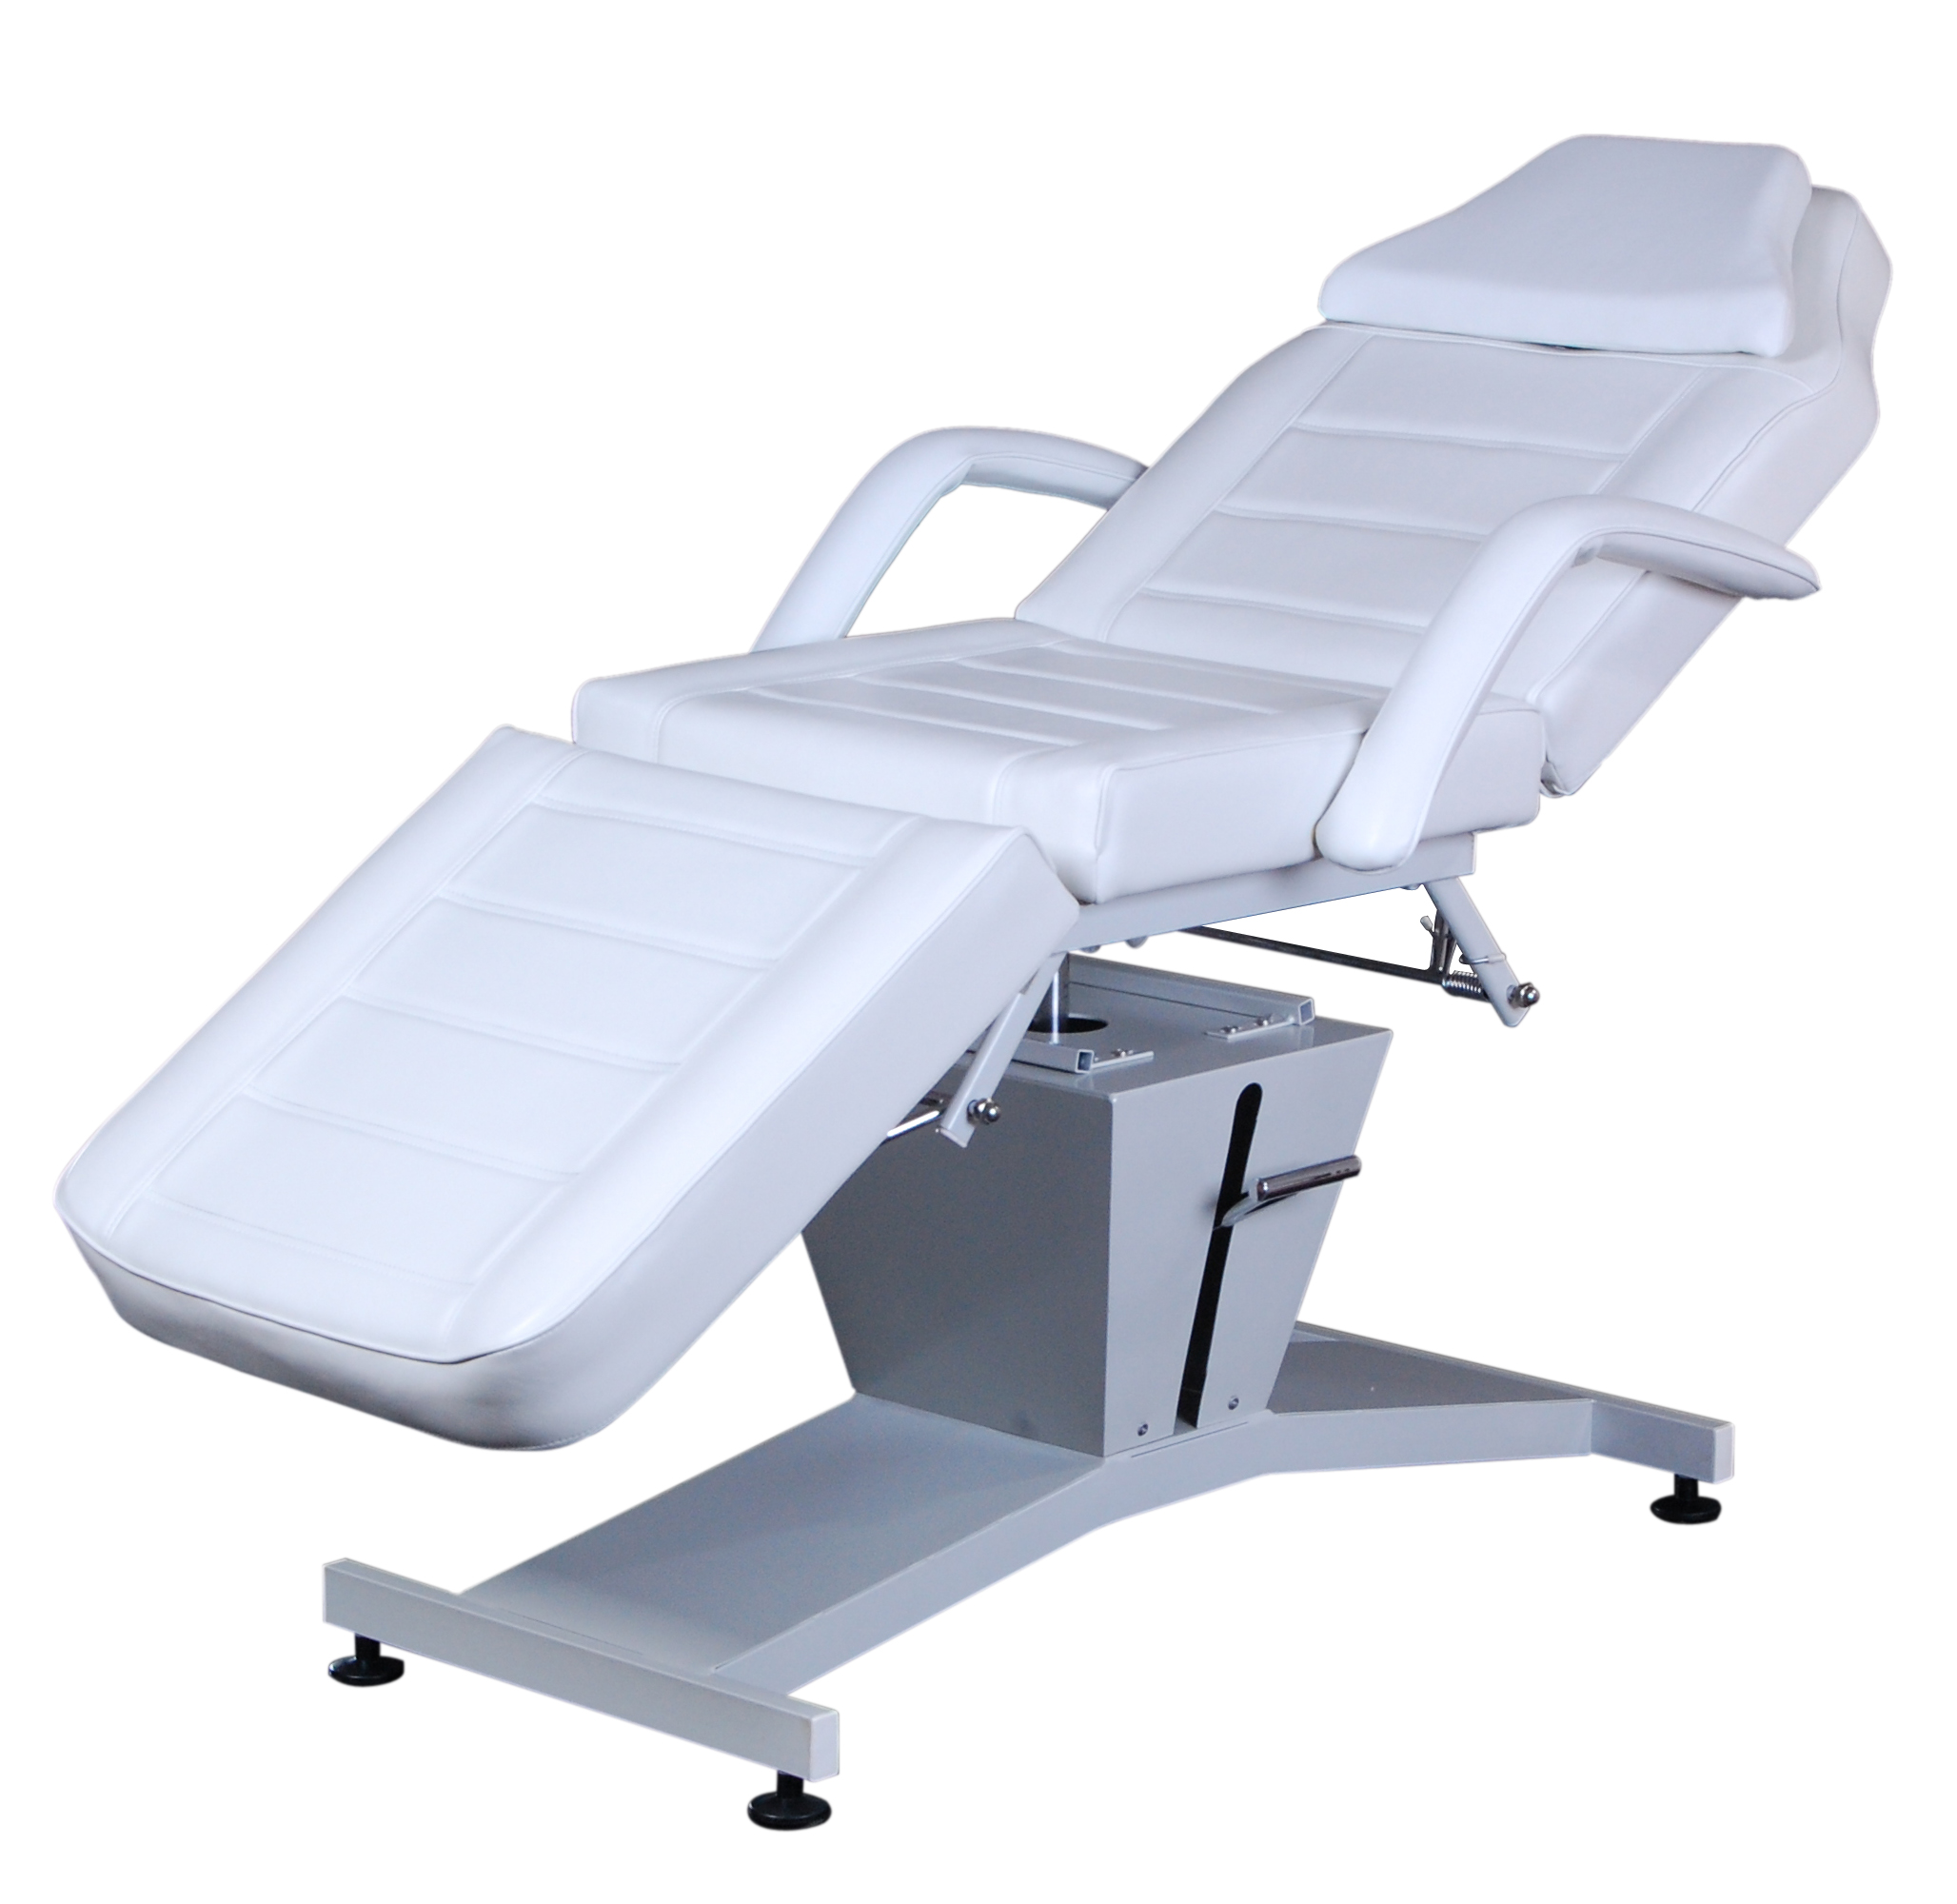 Hydraulic Massage Bed : Elite hydraulic pro aesthetic spa chair bed salon